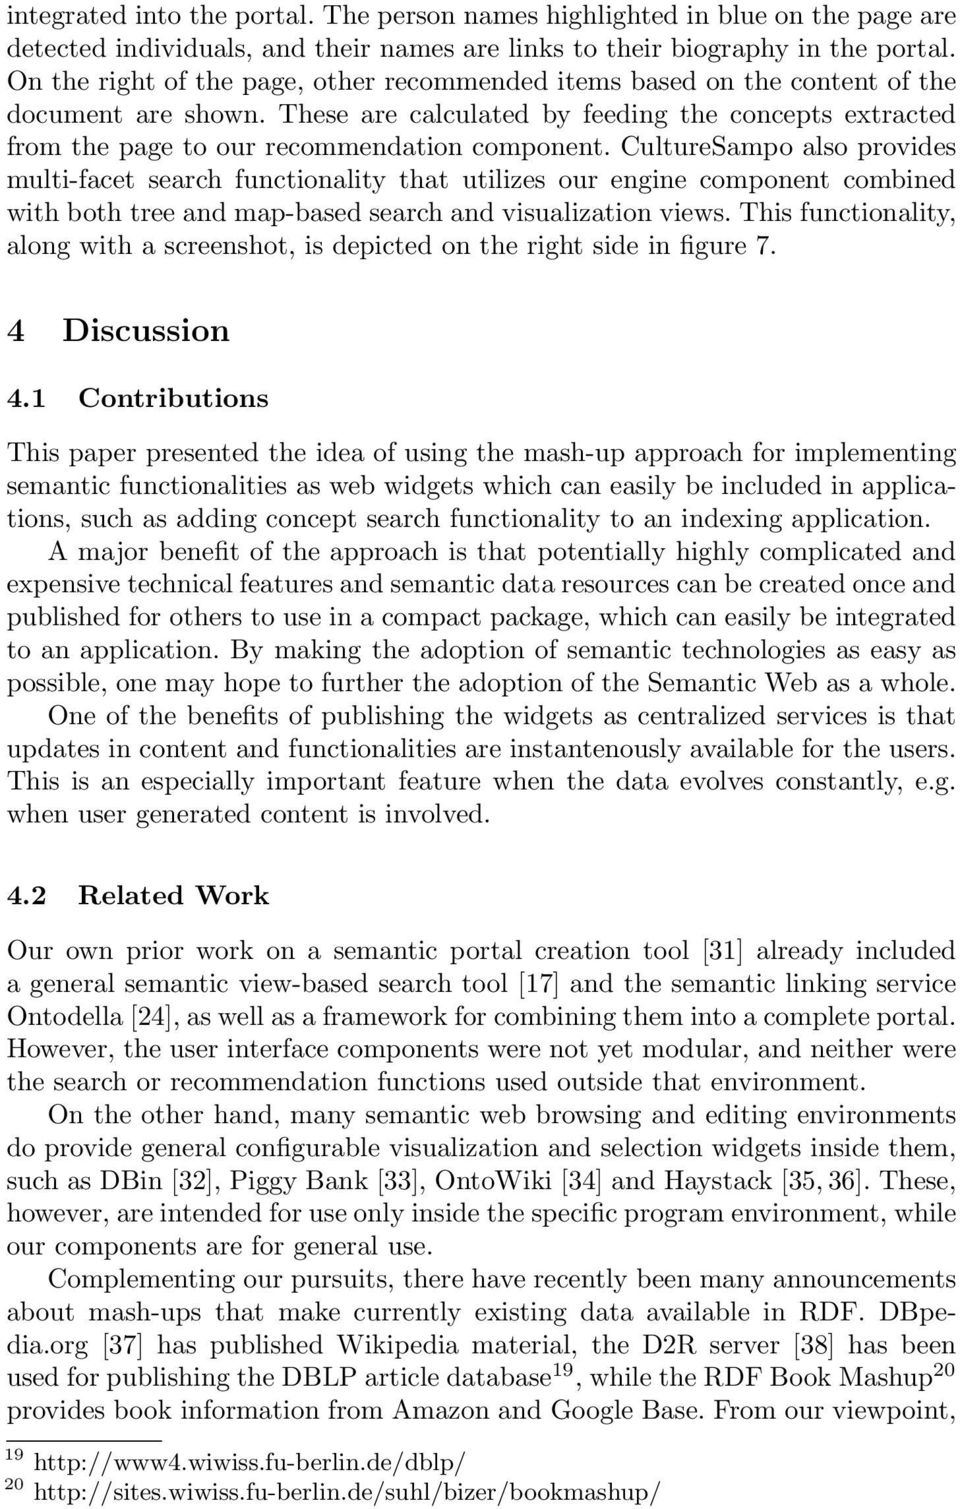 In: Proceedings of the first Asia Semantic Web Conference (ASWC 2006), Beijing, Springer-Verlag, New York (August 4-9 2006) 10. Kauppinen, T., Henriksson, R., Väätäinen, J., Deichstetter, C.